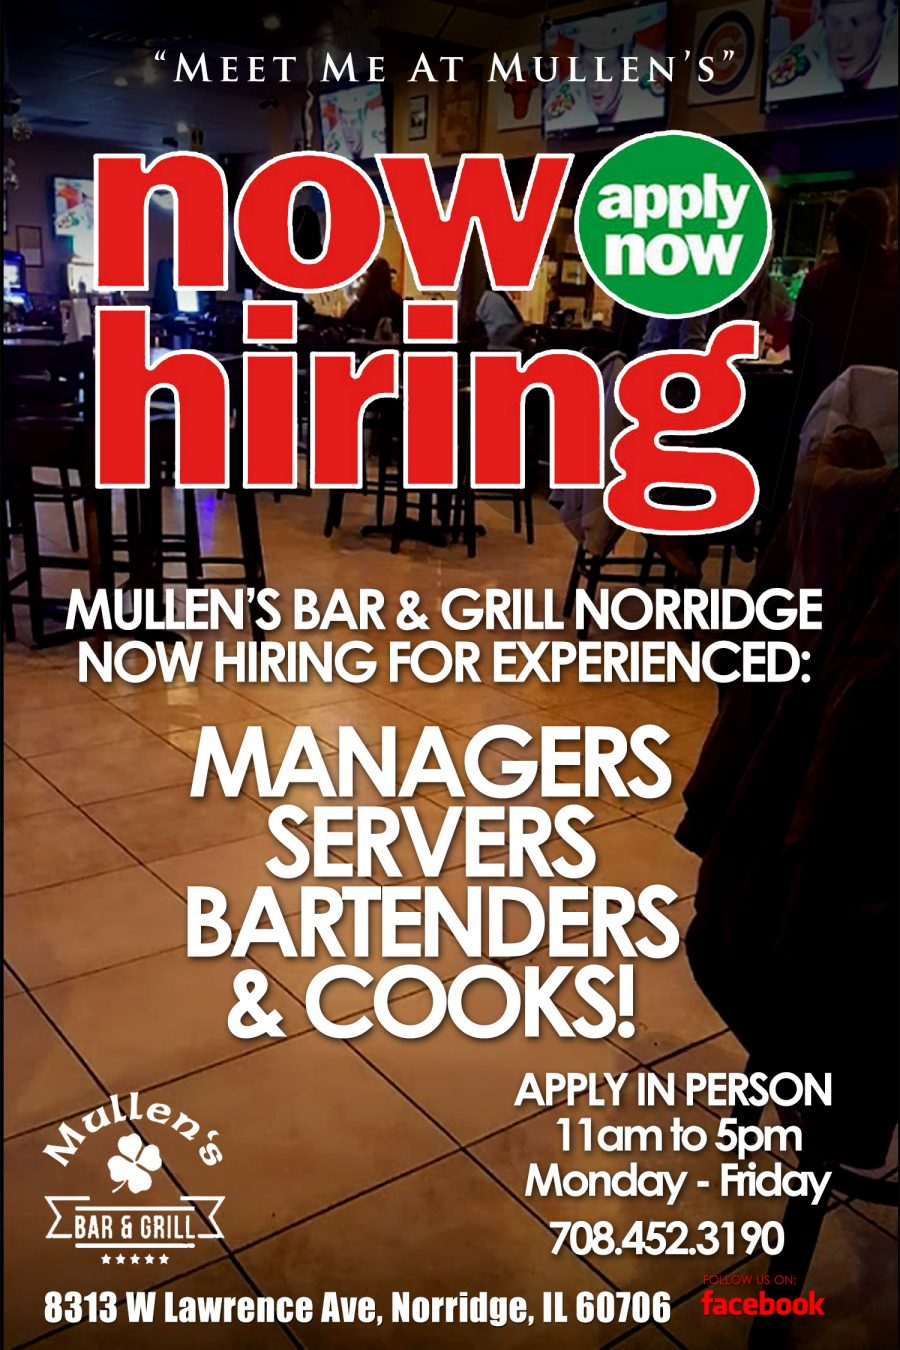 NOW HIRING! MANAGERS, SERVERS, BARTNEDERS, & COOKS!